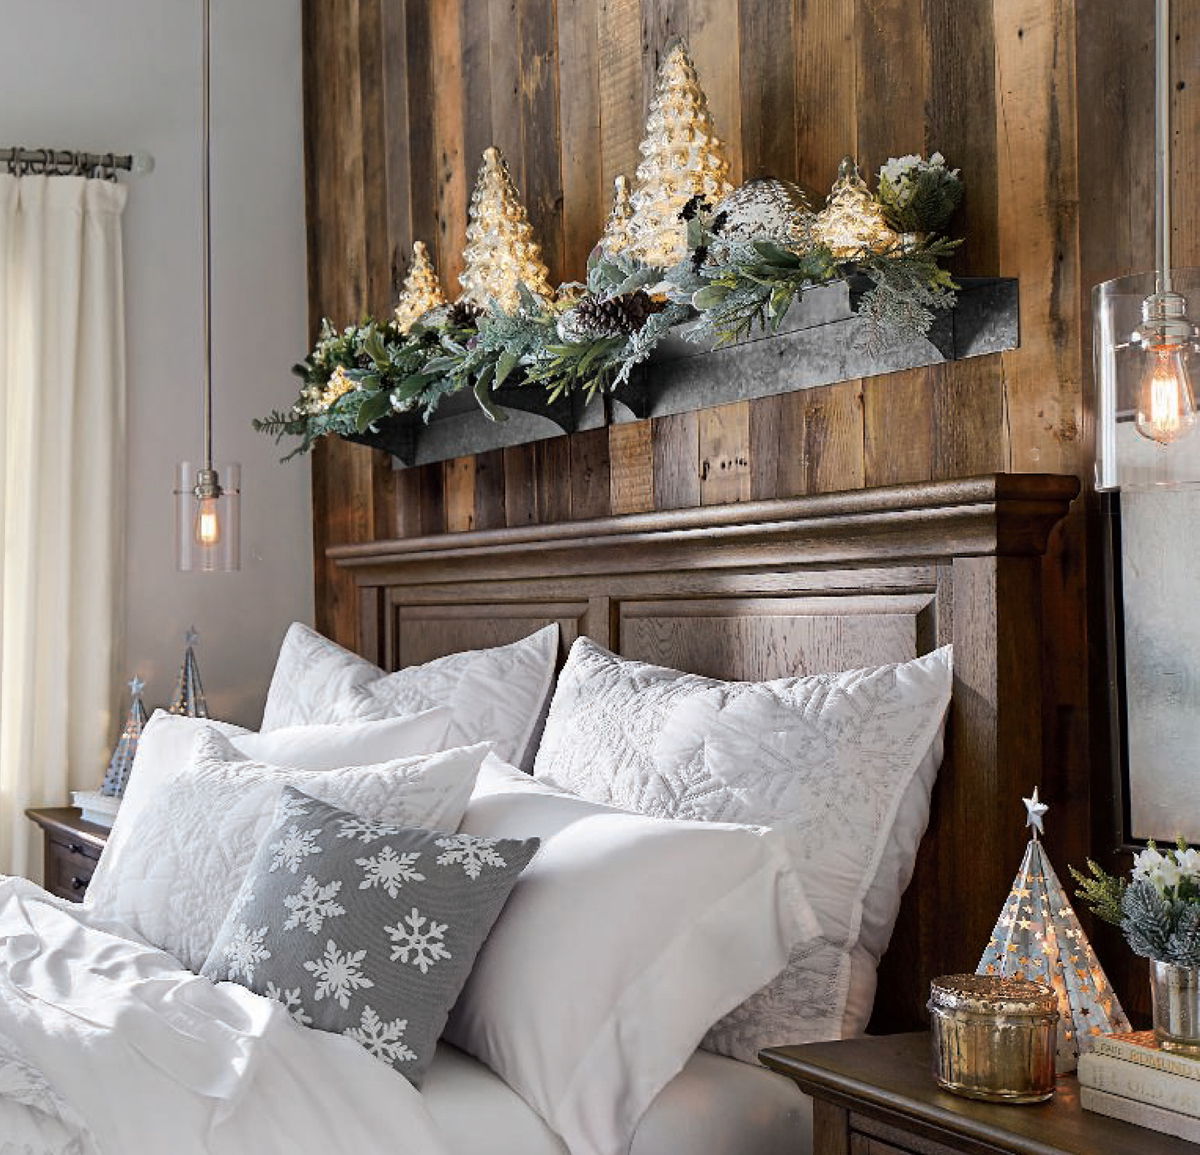 25 Bedroom Design Ideas For Your Home: Rustic Christmas Decorating Ideas